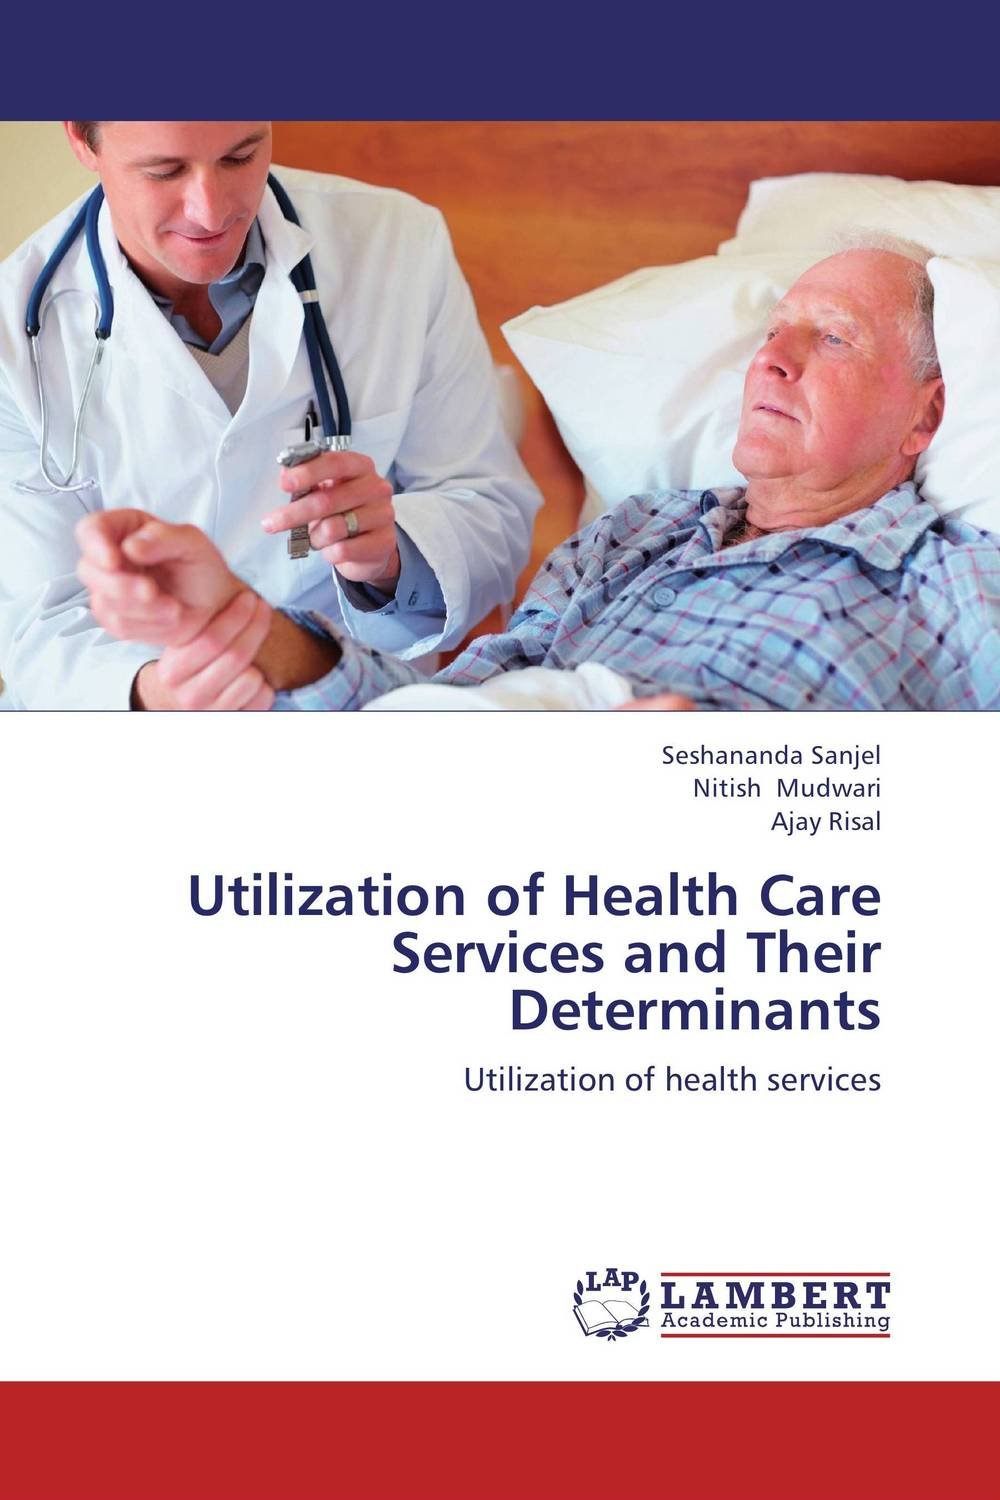 Utilization of Health Care Services and Their Determinants